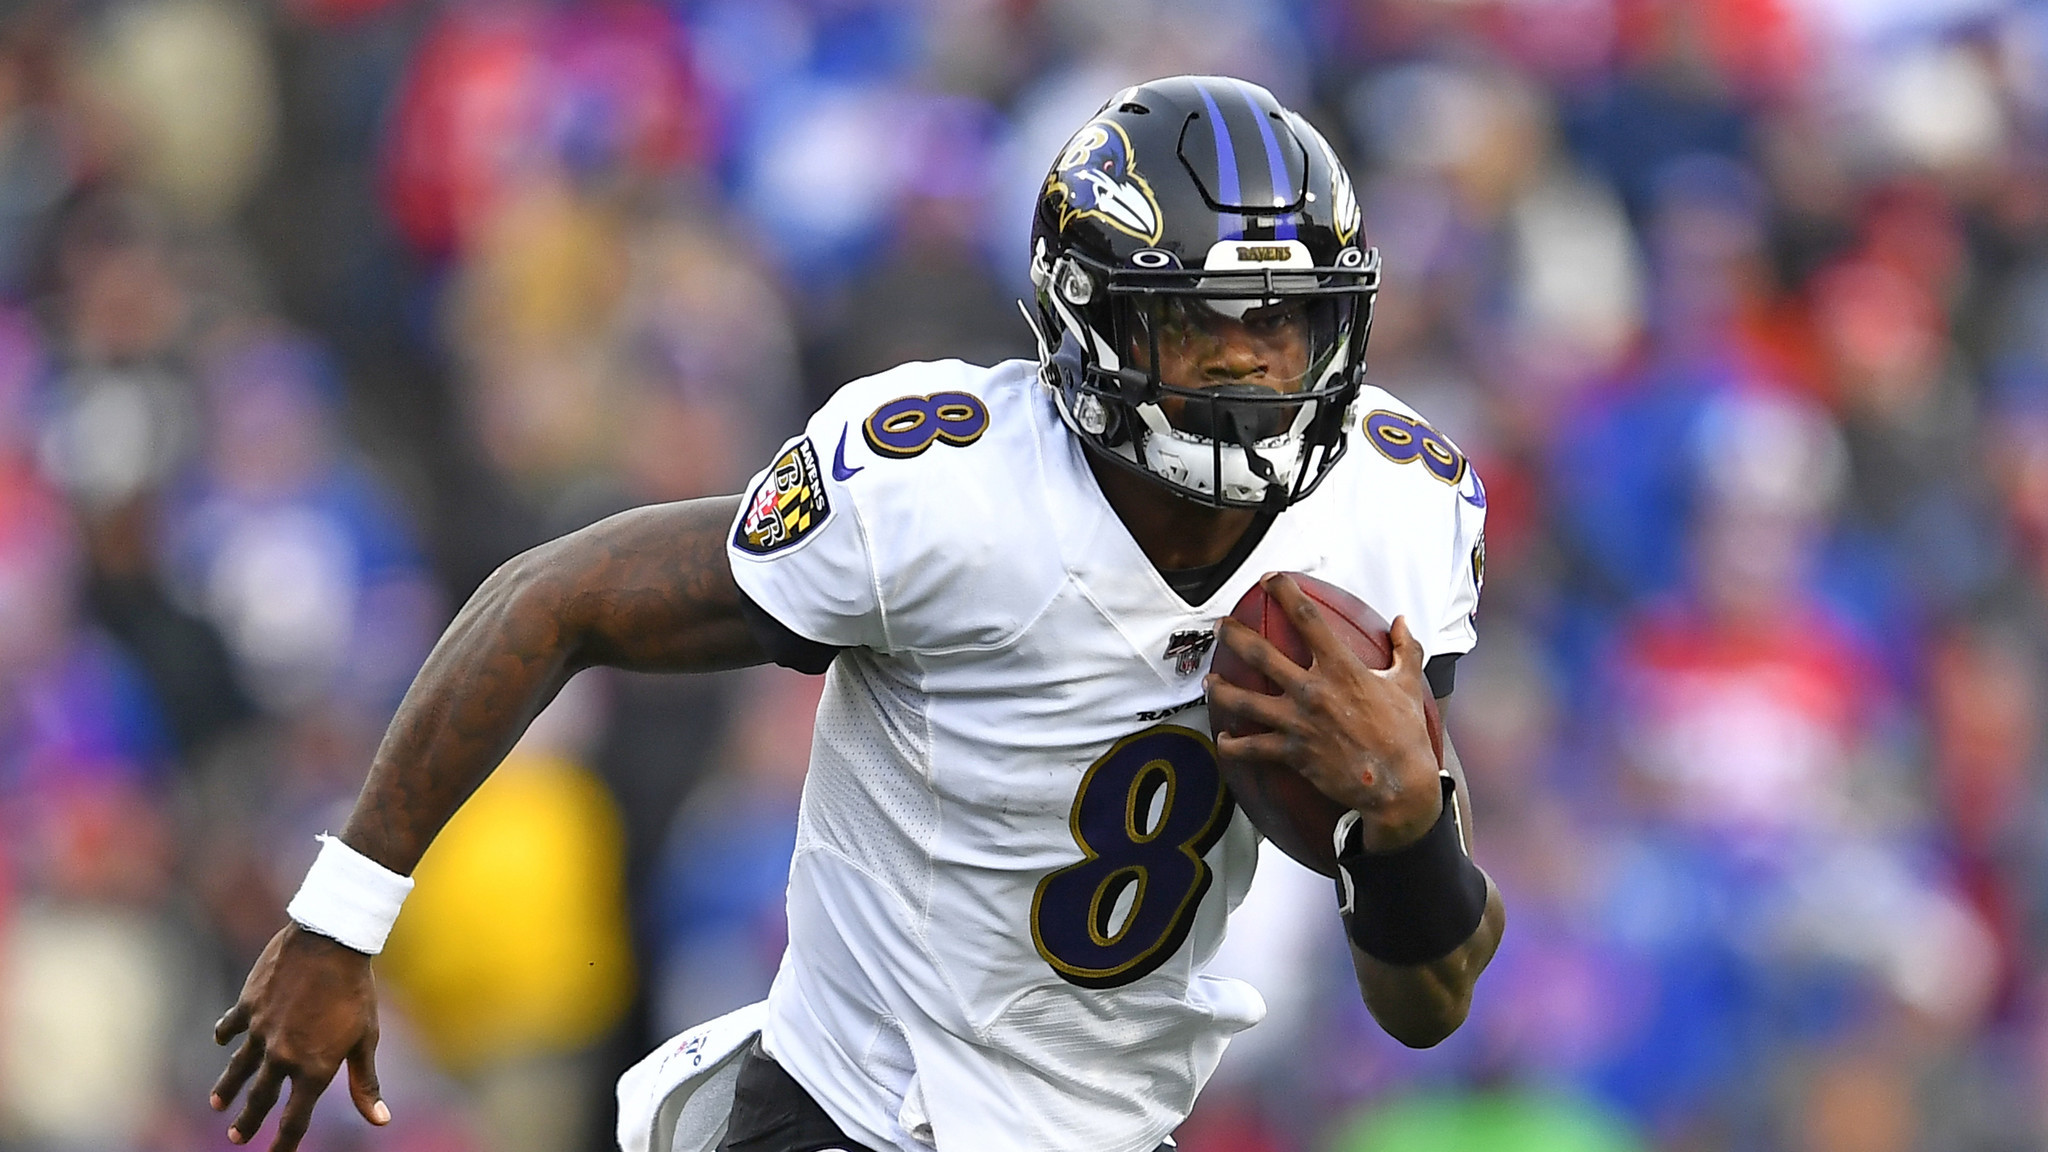 Lamar Jackson is about to embarrass the Jets